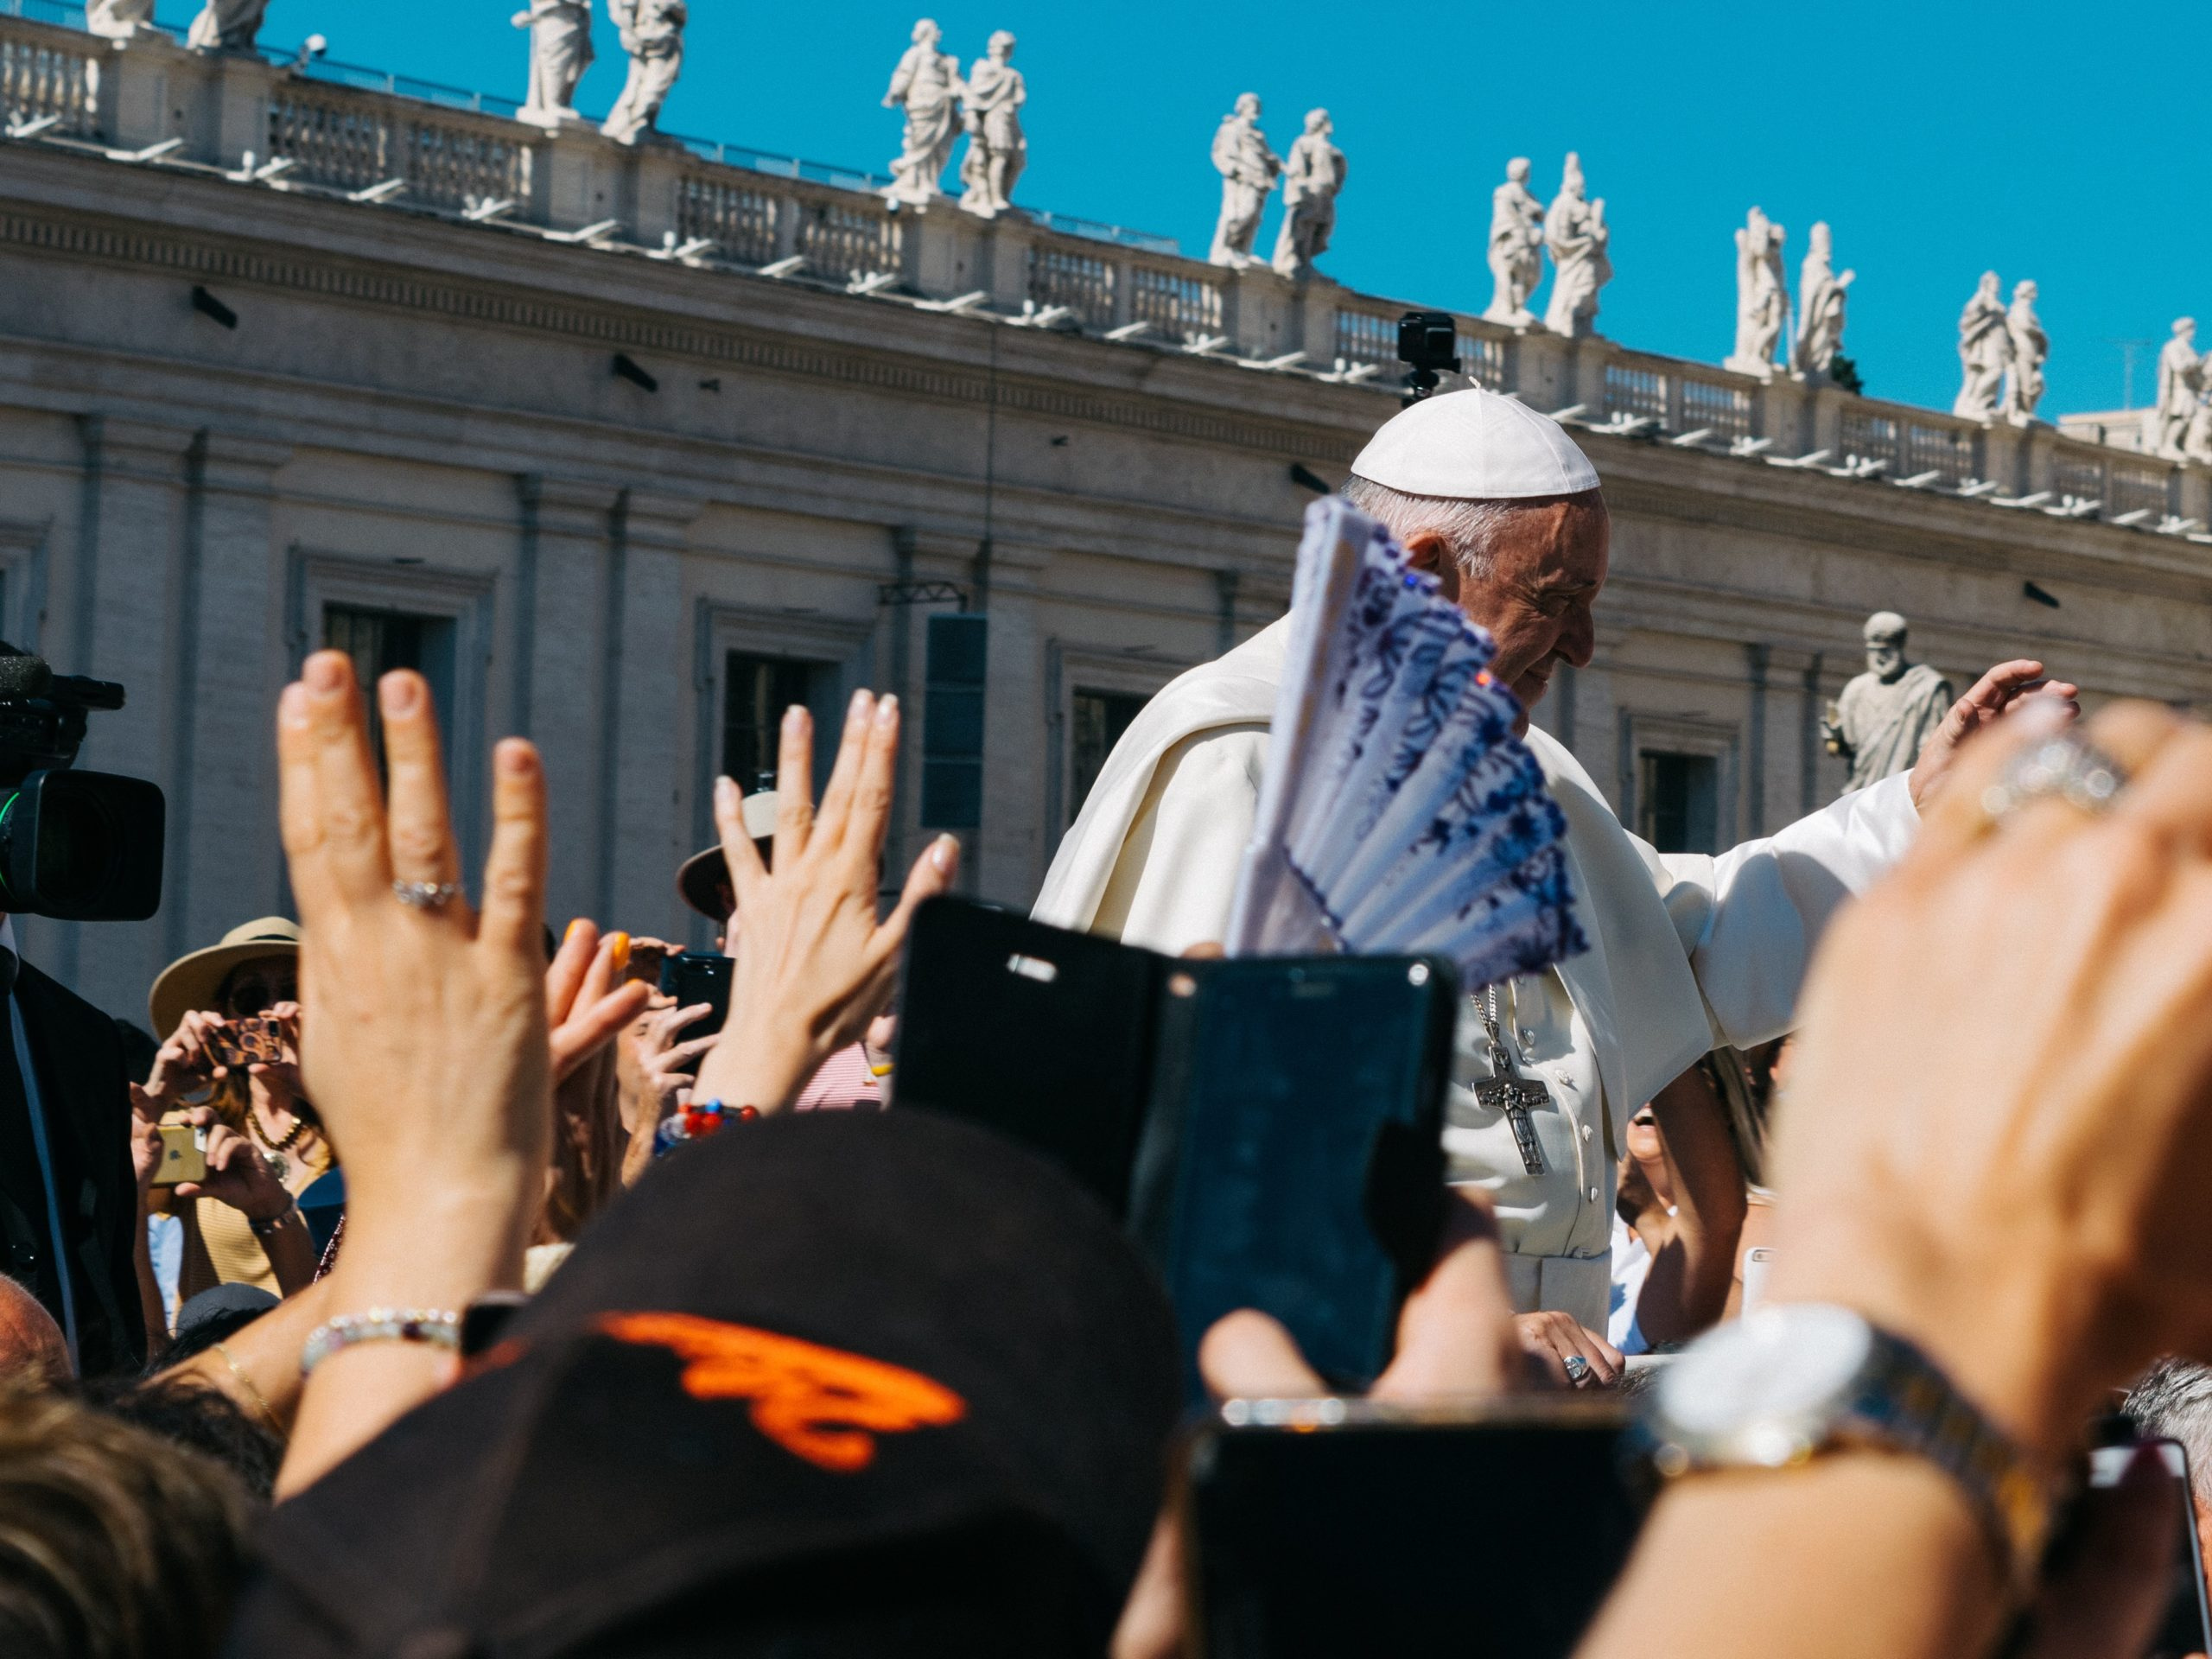 It is our Christian Obligation to help individuals know Jesus- Pope Francis